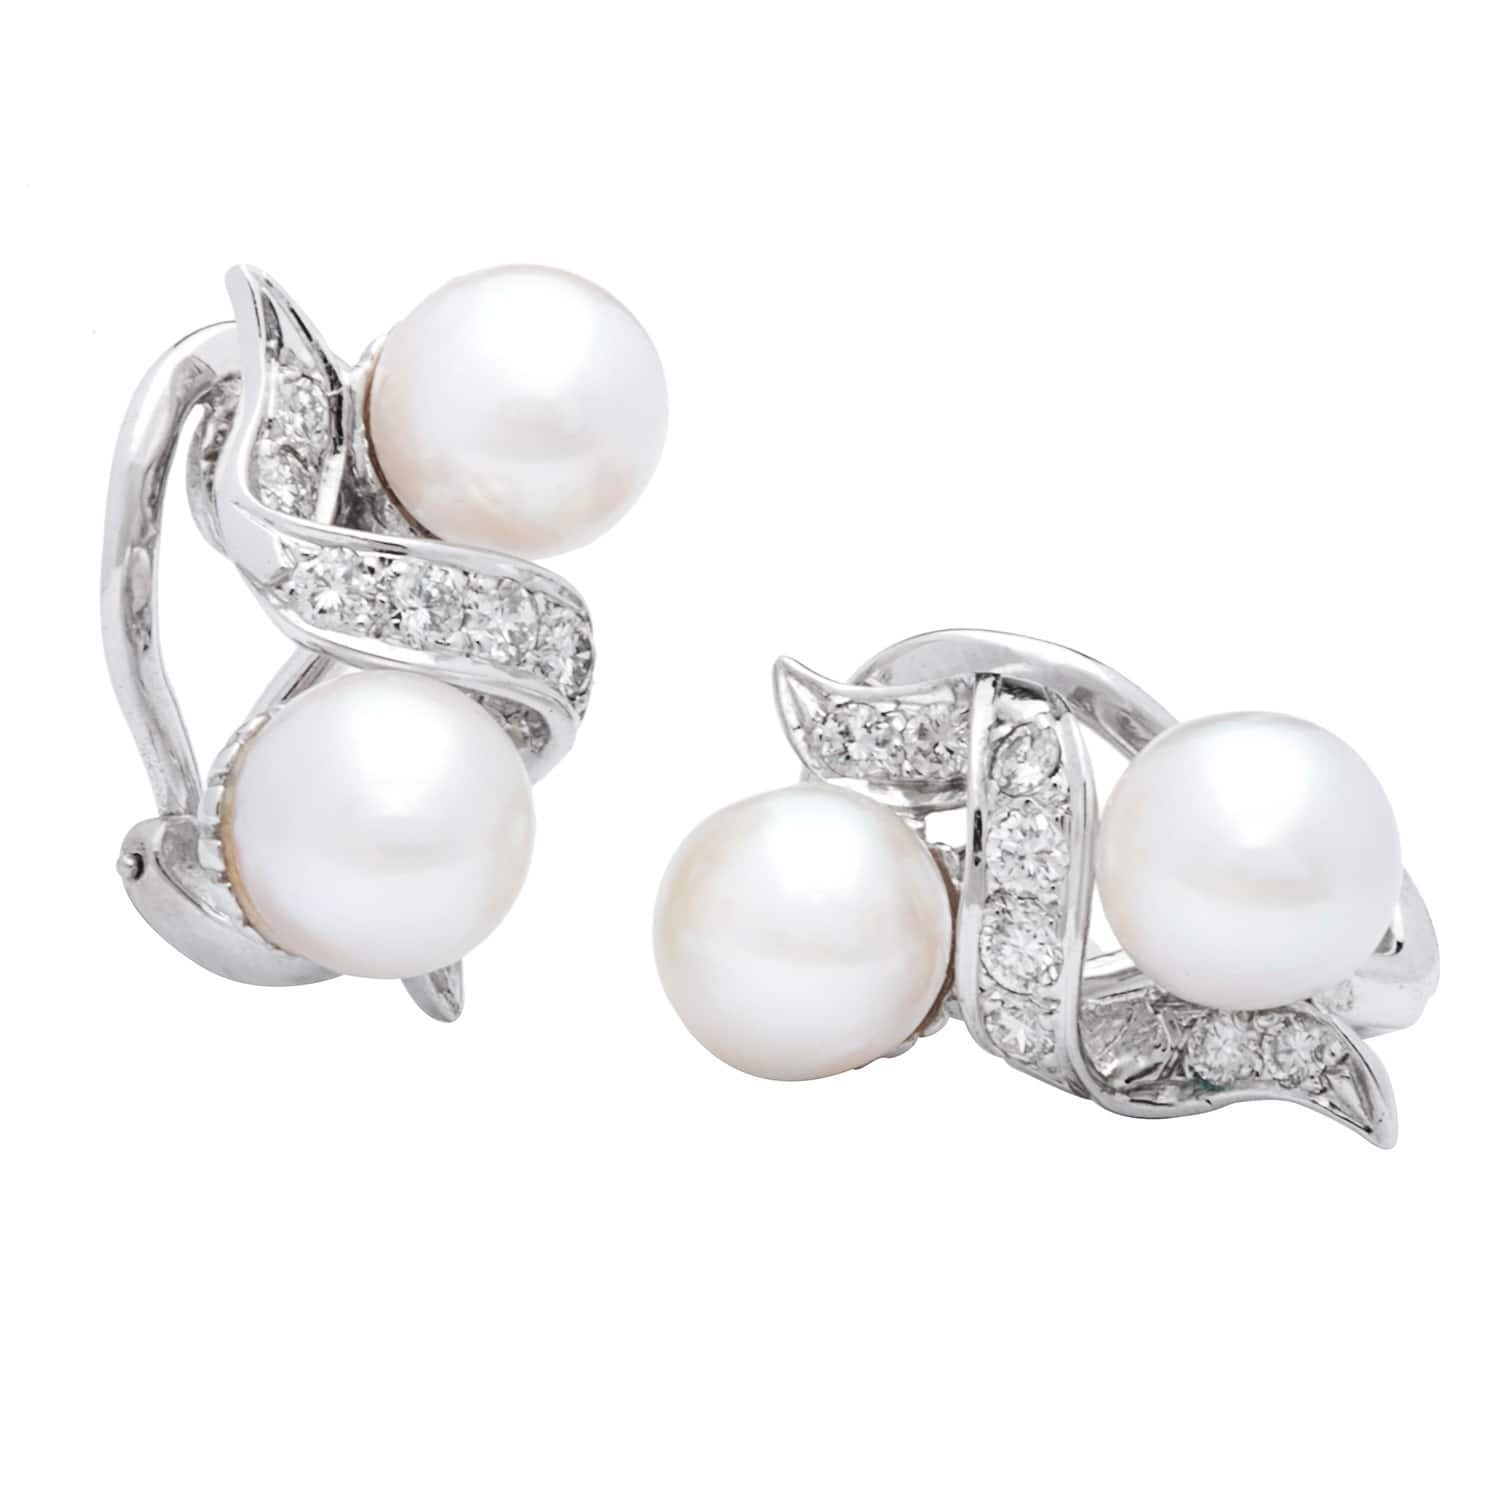 Pre-owned 14k White Gold 1/2ct TDW Cultured Pearl and Diamonds Estate Earrings (G-H, SI1-SI2) (7-8 mm)